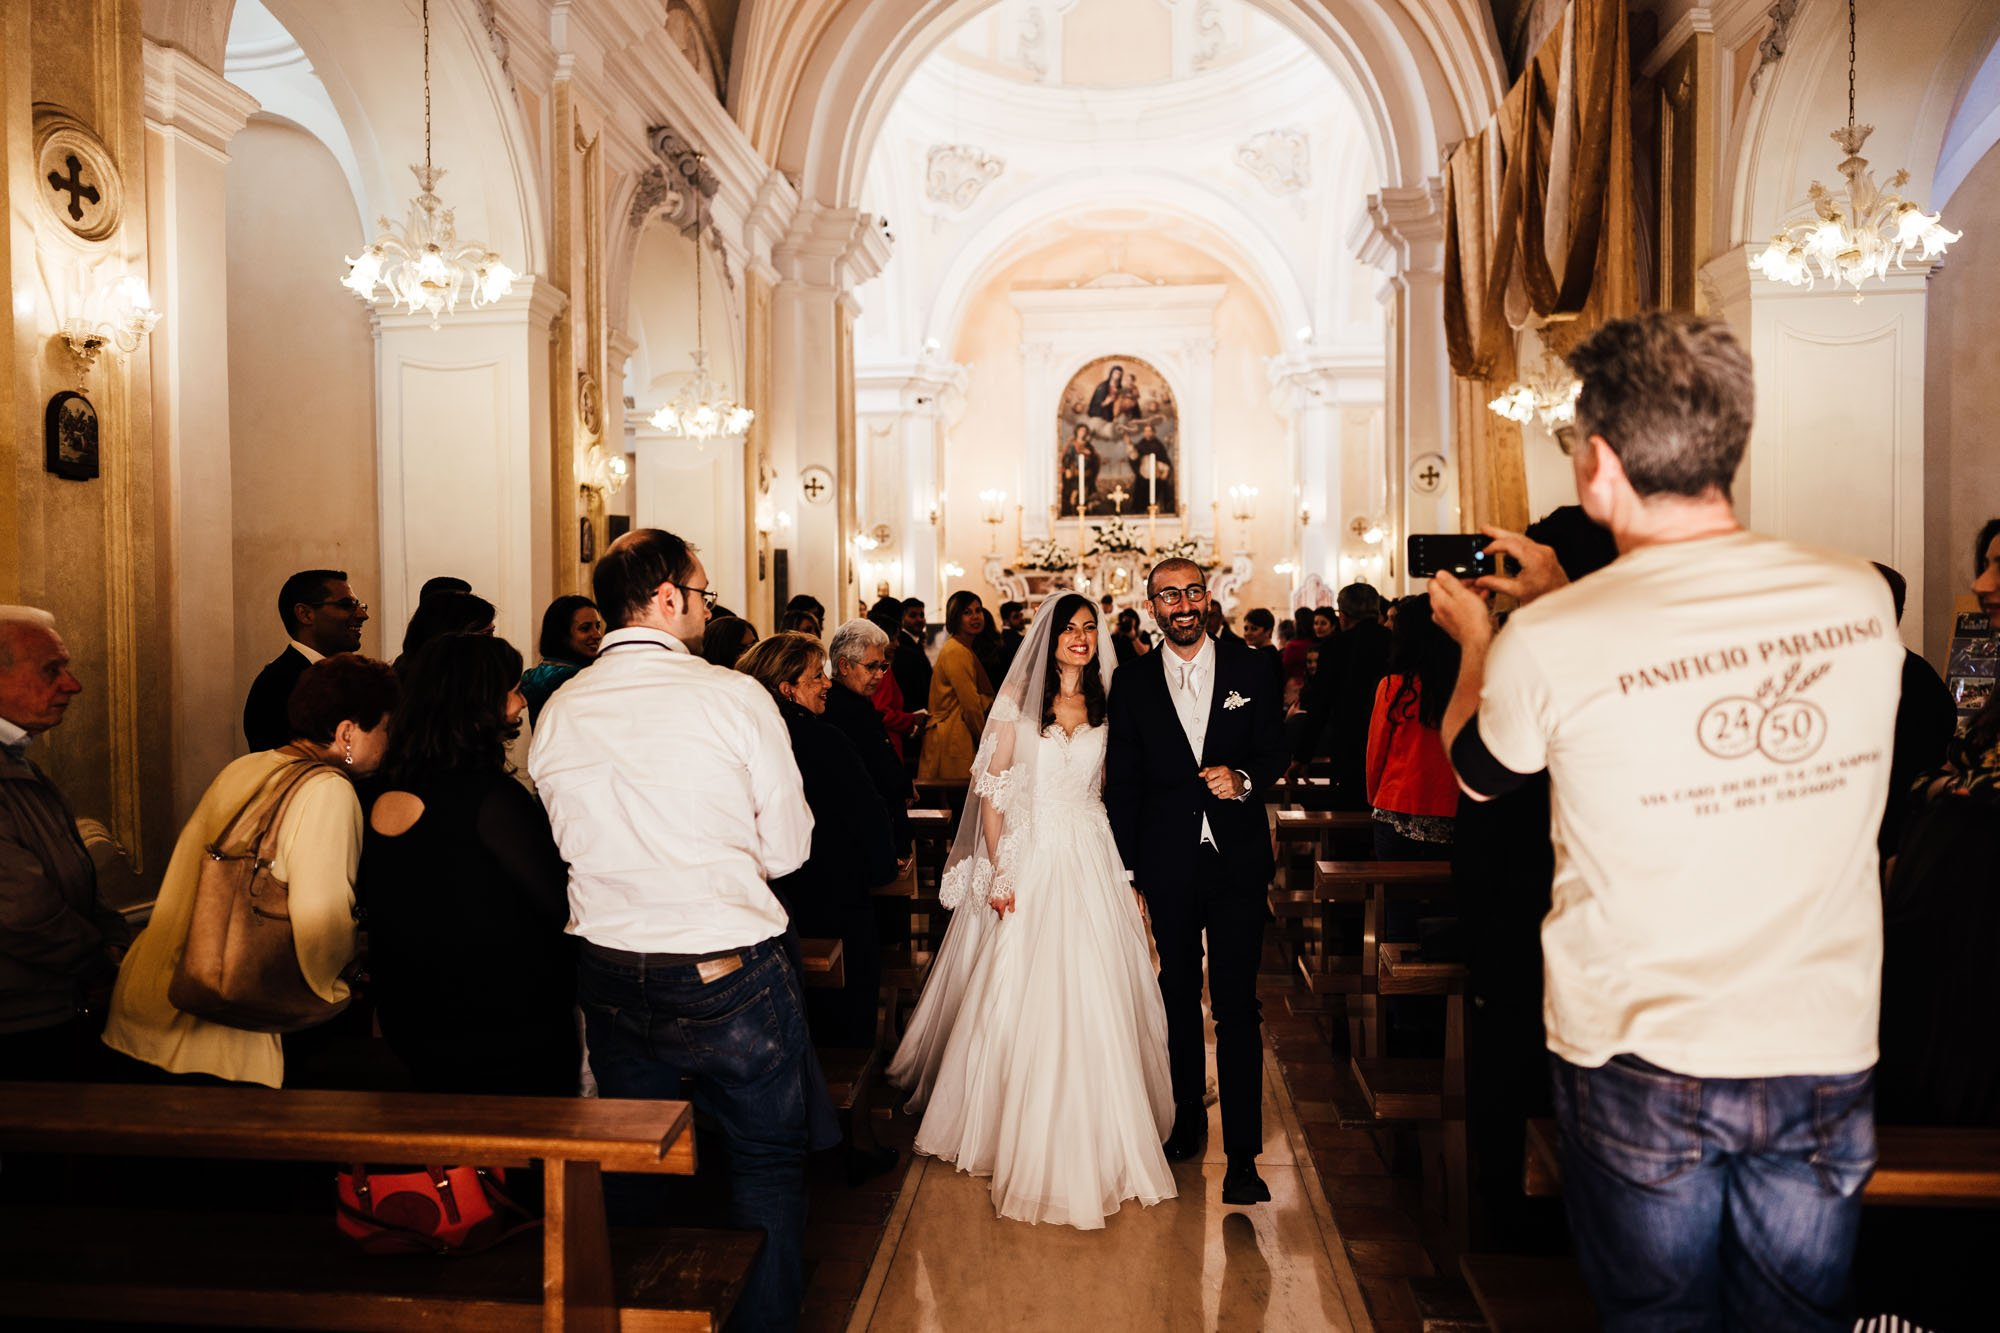 wedding-in-italy-mary-mimmo-27